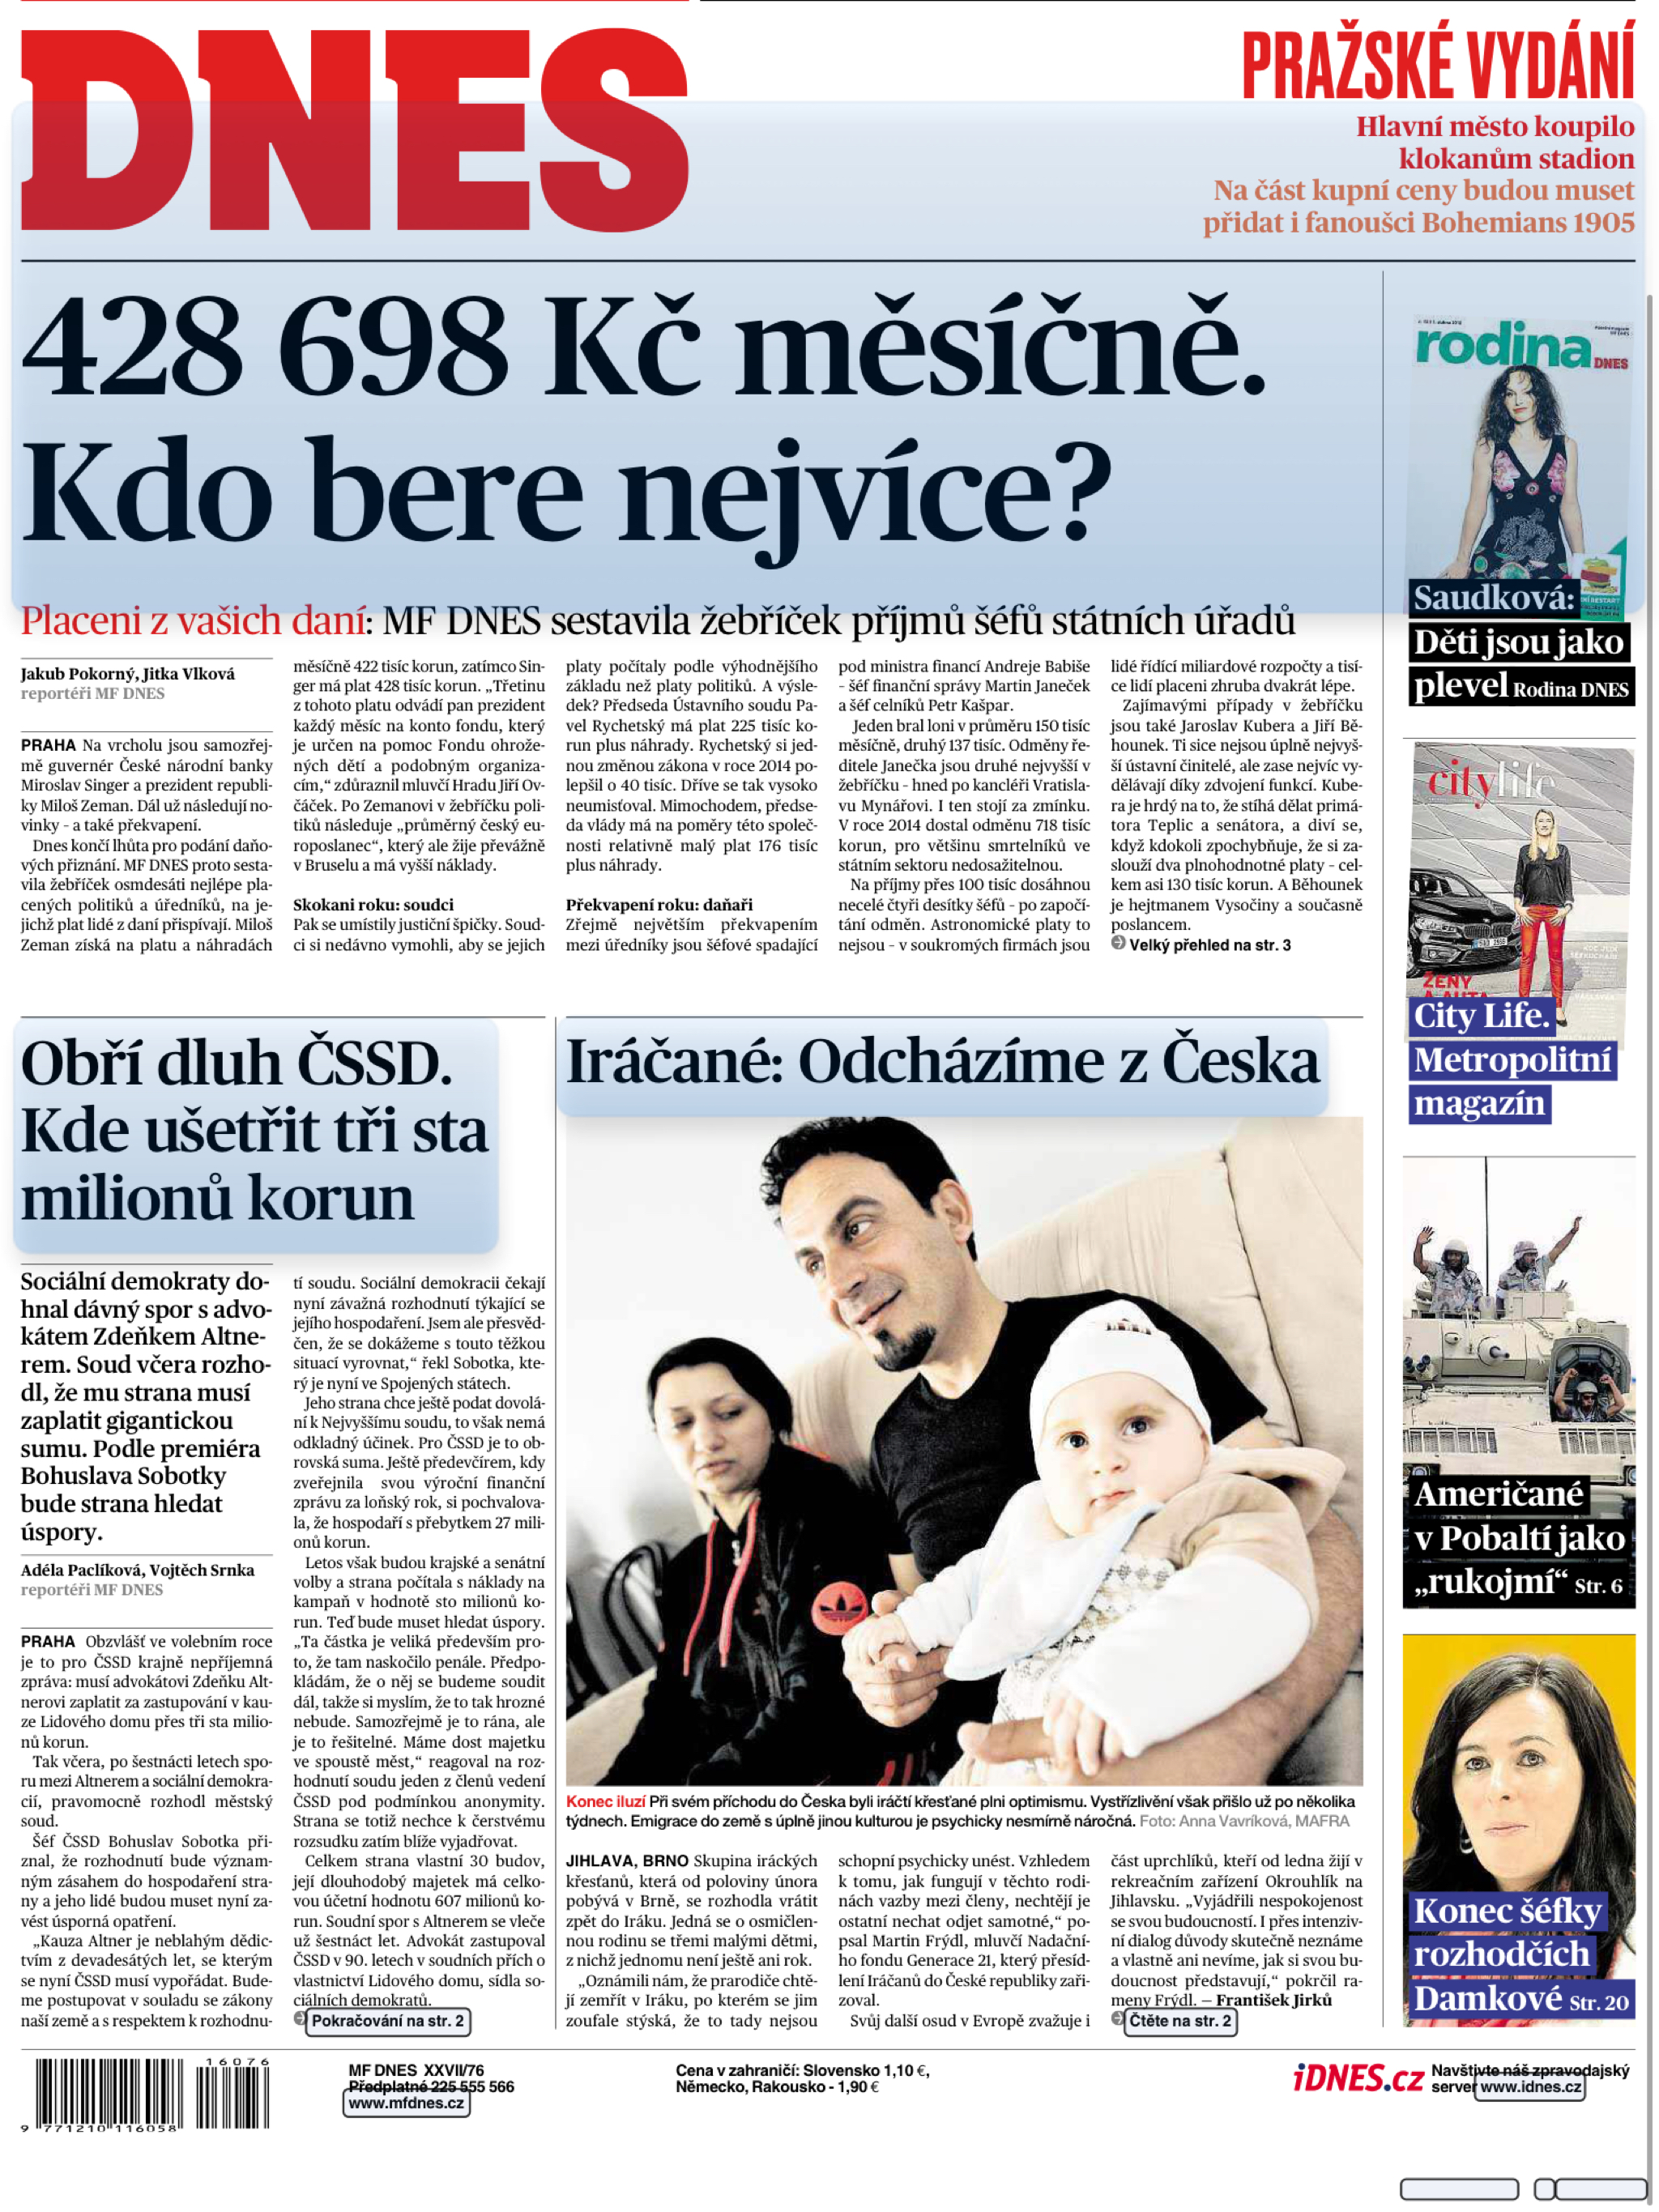 Dnes Czech Republic | Hollywood, Rise Televize | Front Page